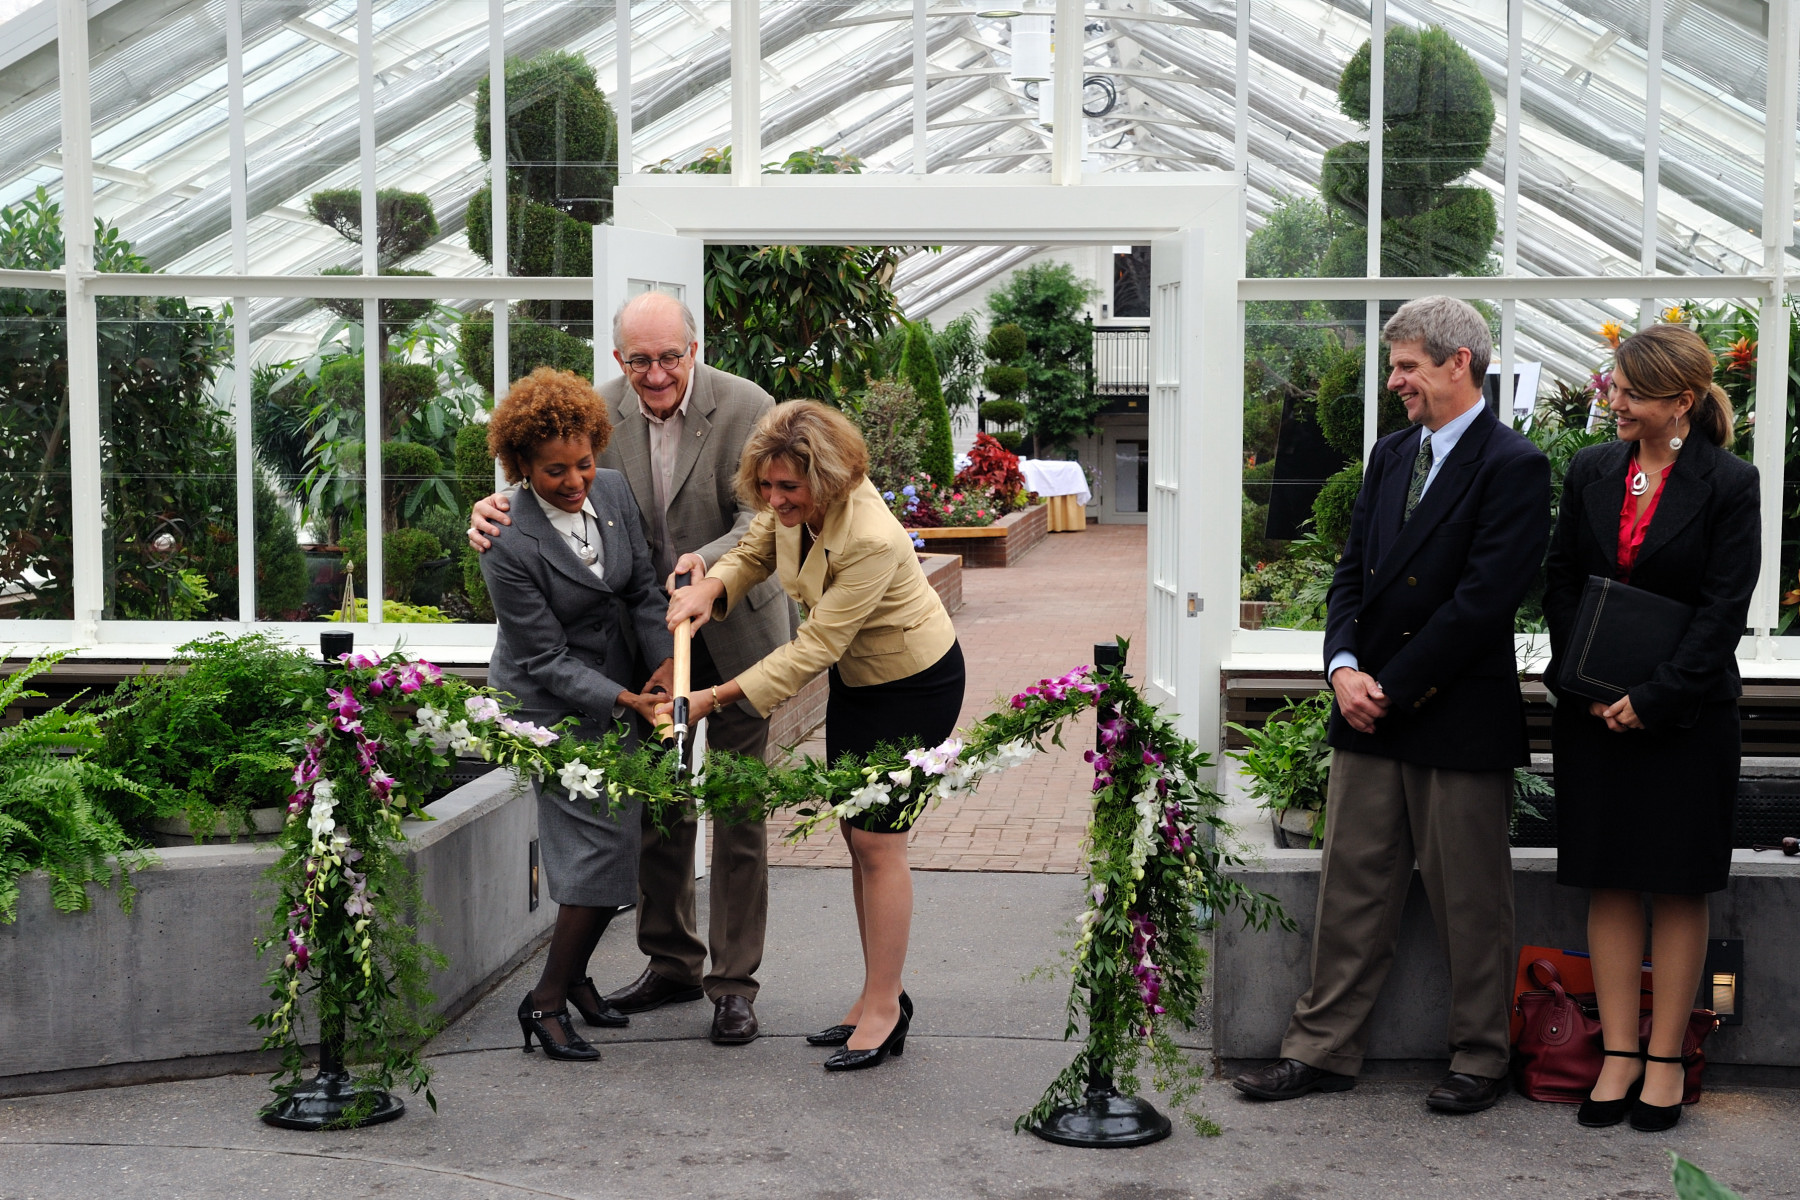 Following a major rehabilitation project carried out by the National Capital Commission (NCC), the greenhouses located on the grounds of Rideau Hall reopened after 7 years. To mark this event Their Excellencies delivered a speech in the presence of Marie Lemay, Chief Executive Officer at the NCC, NCC employees, workers and other guests.